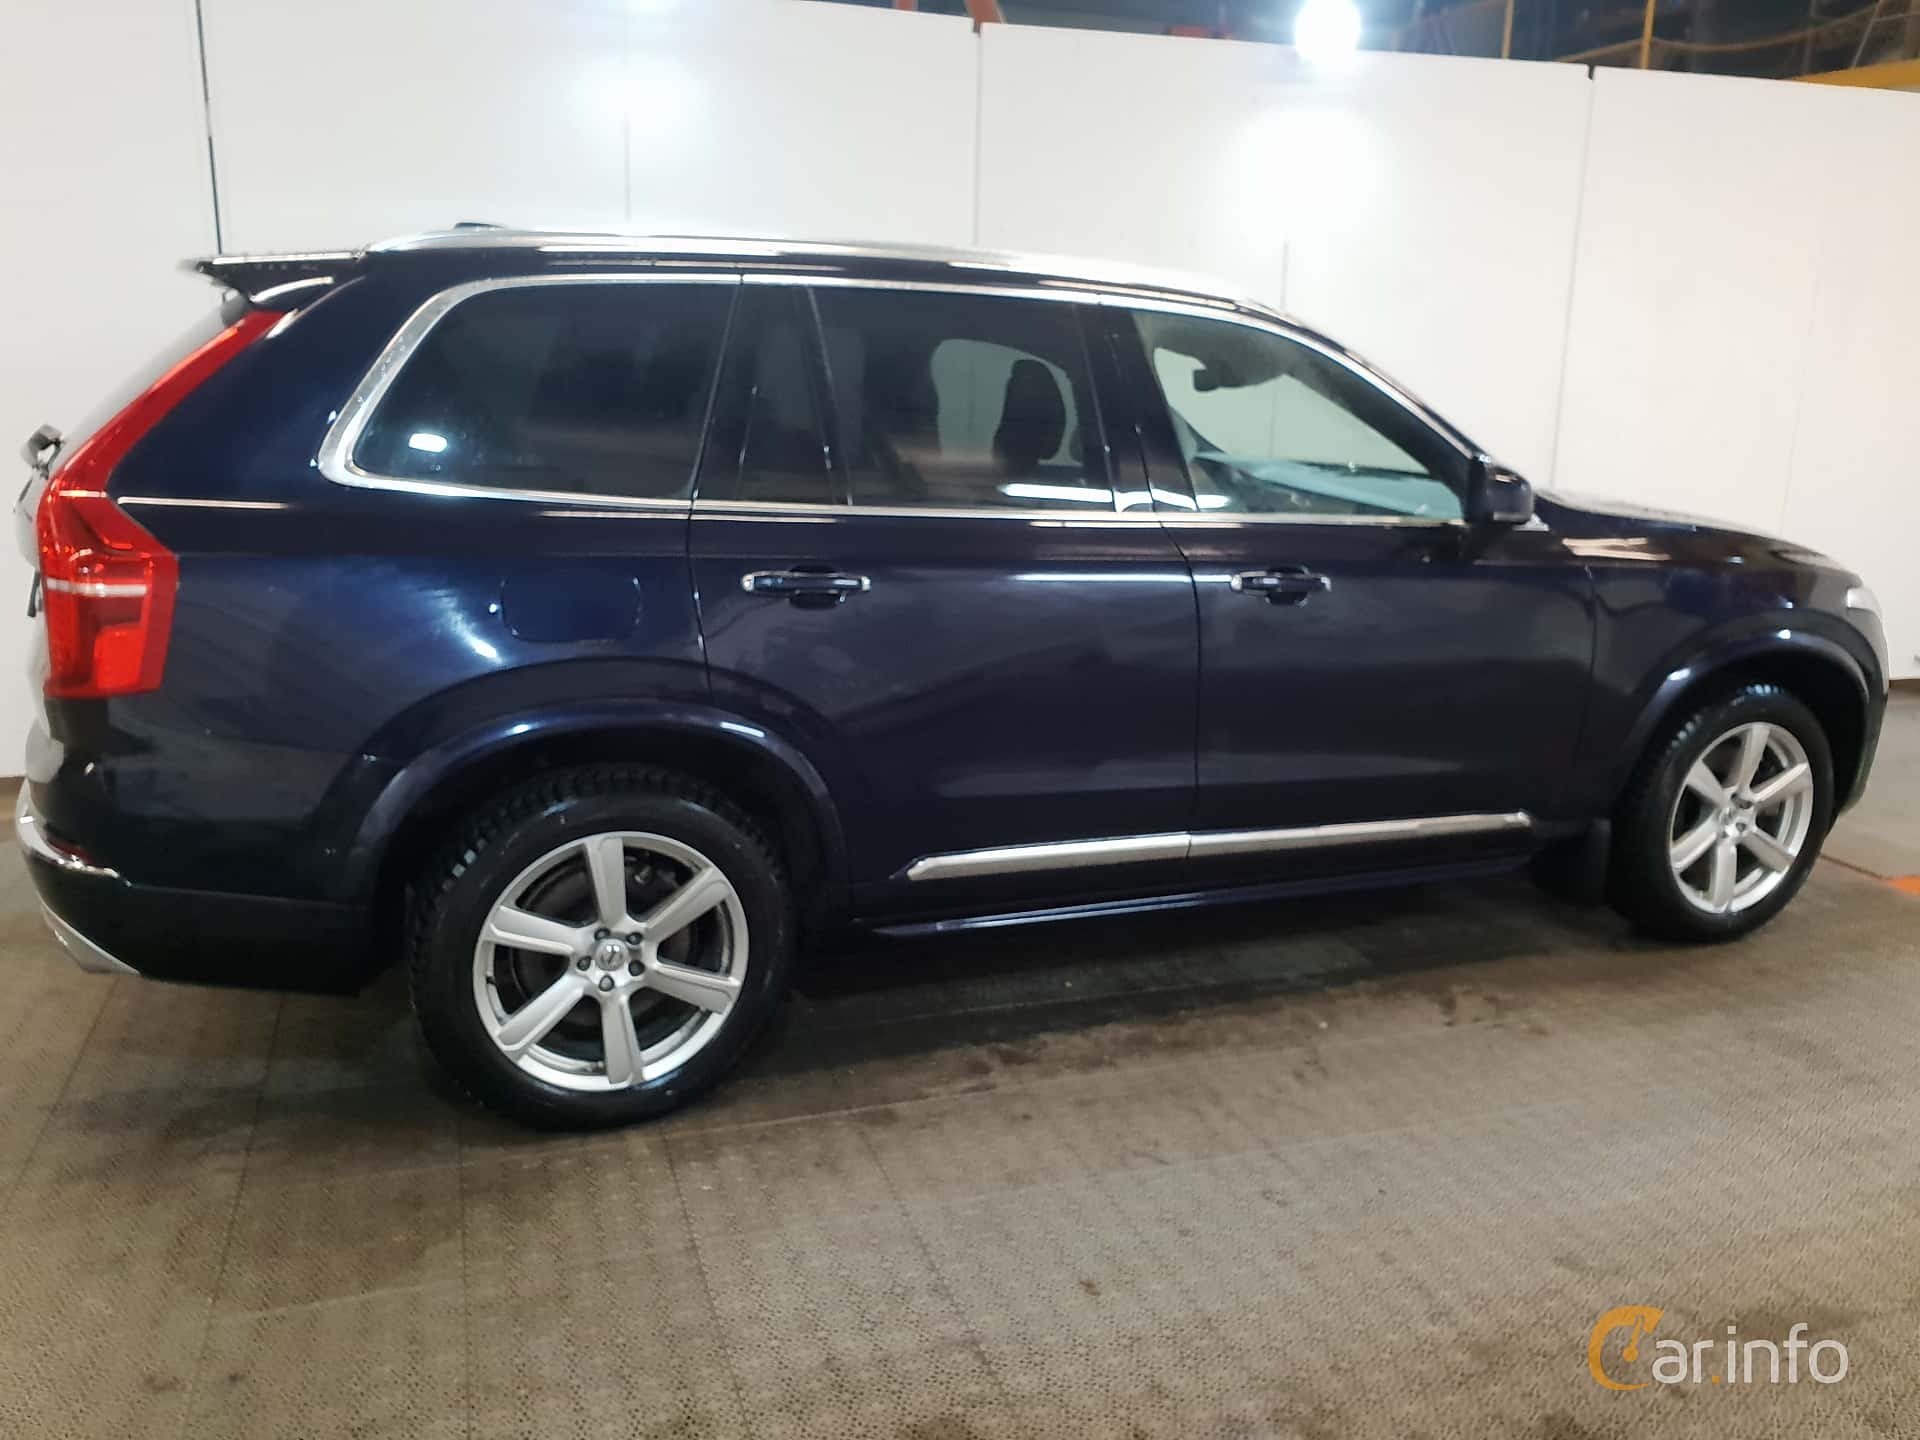 Volvo XC90 T8 AWD Geartronic, 407hp, 2017